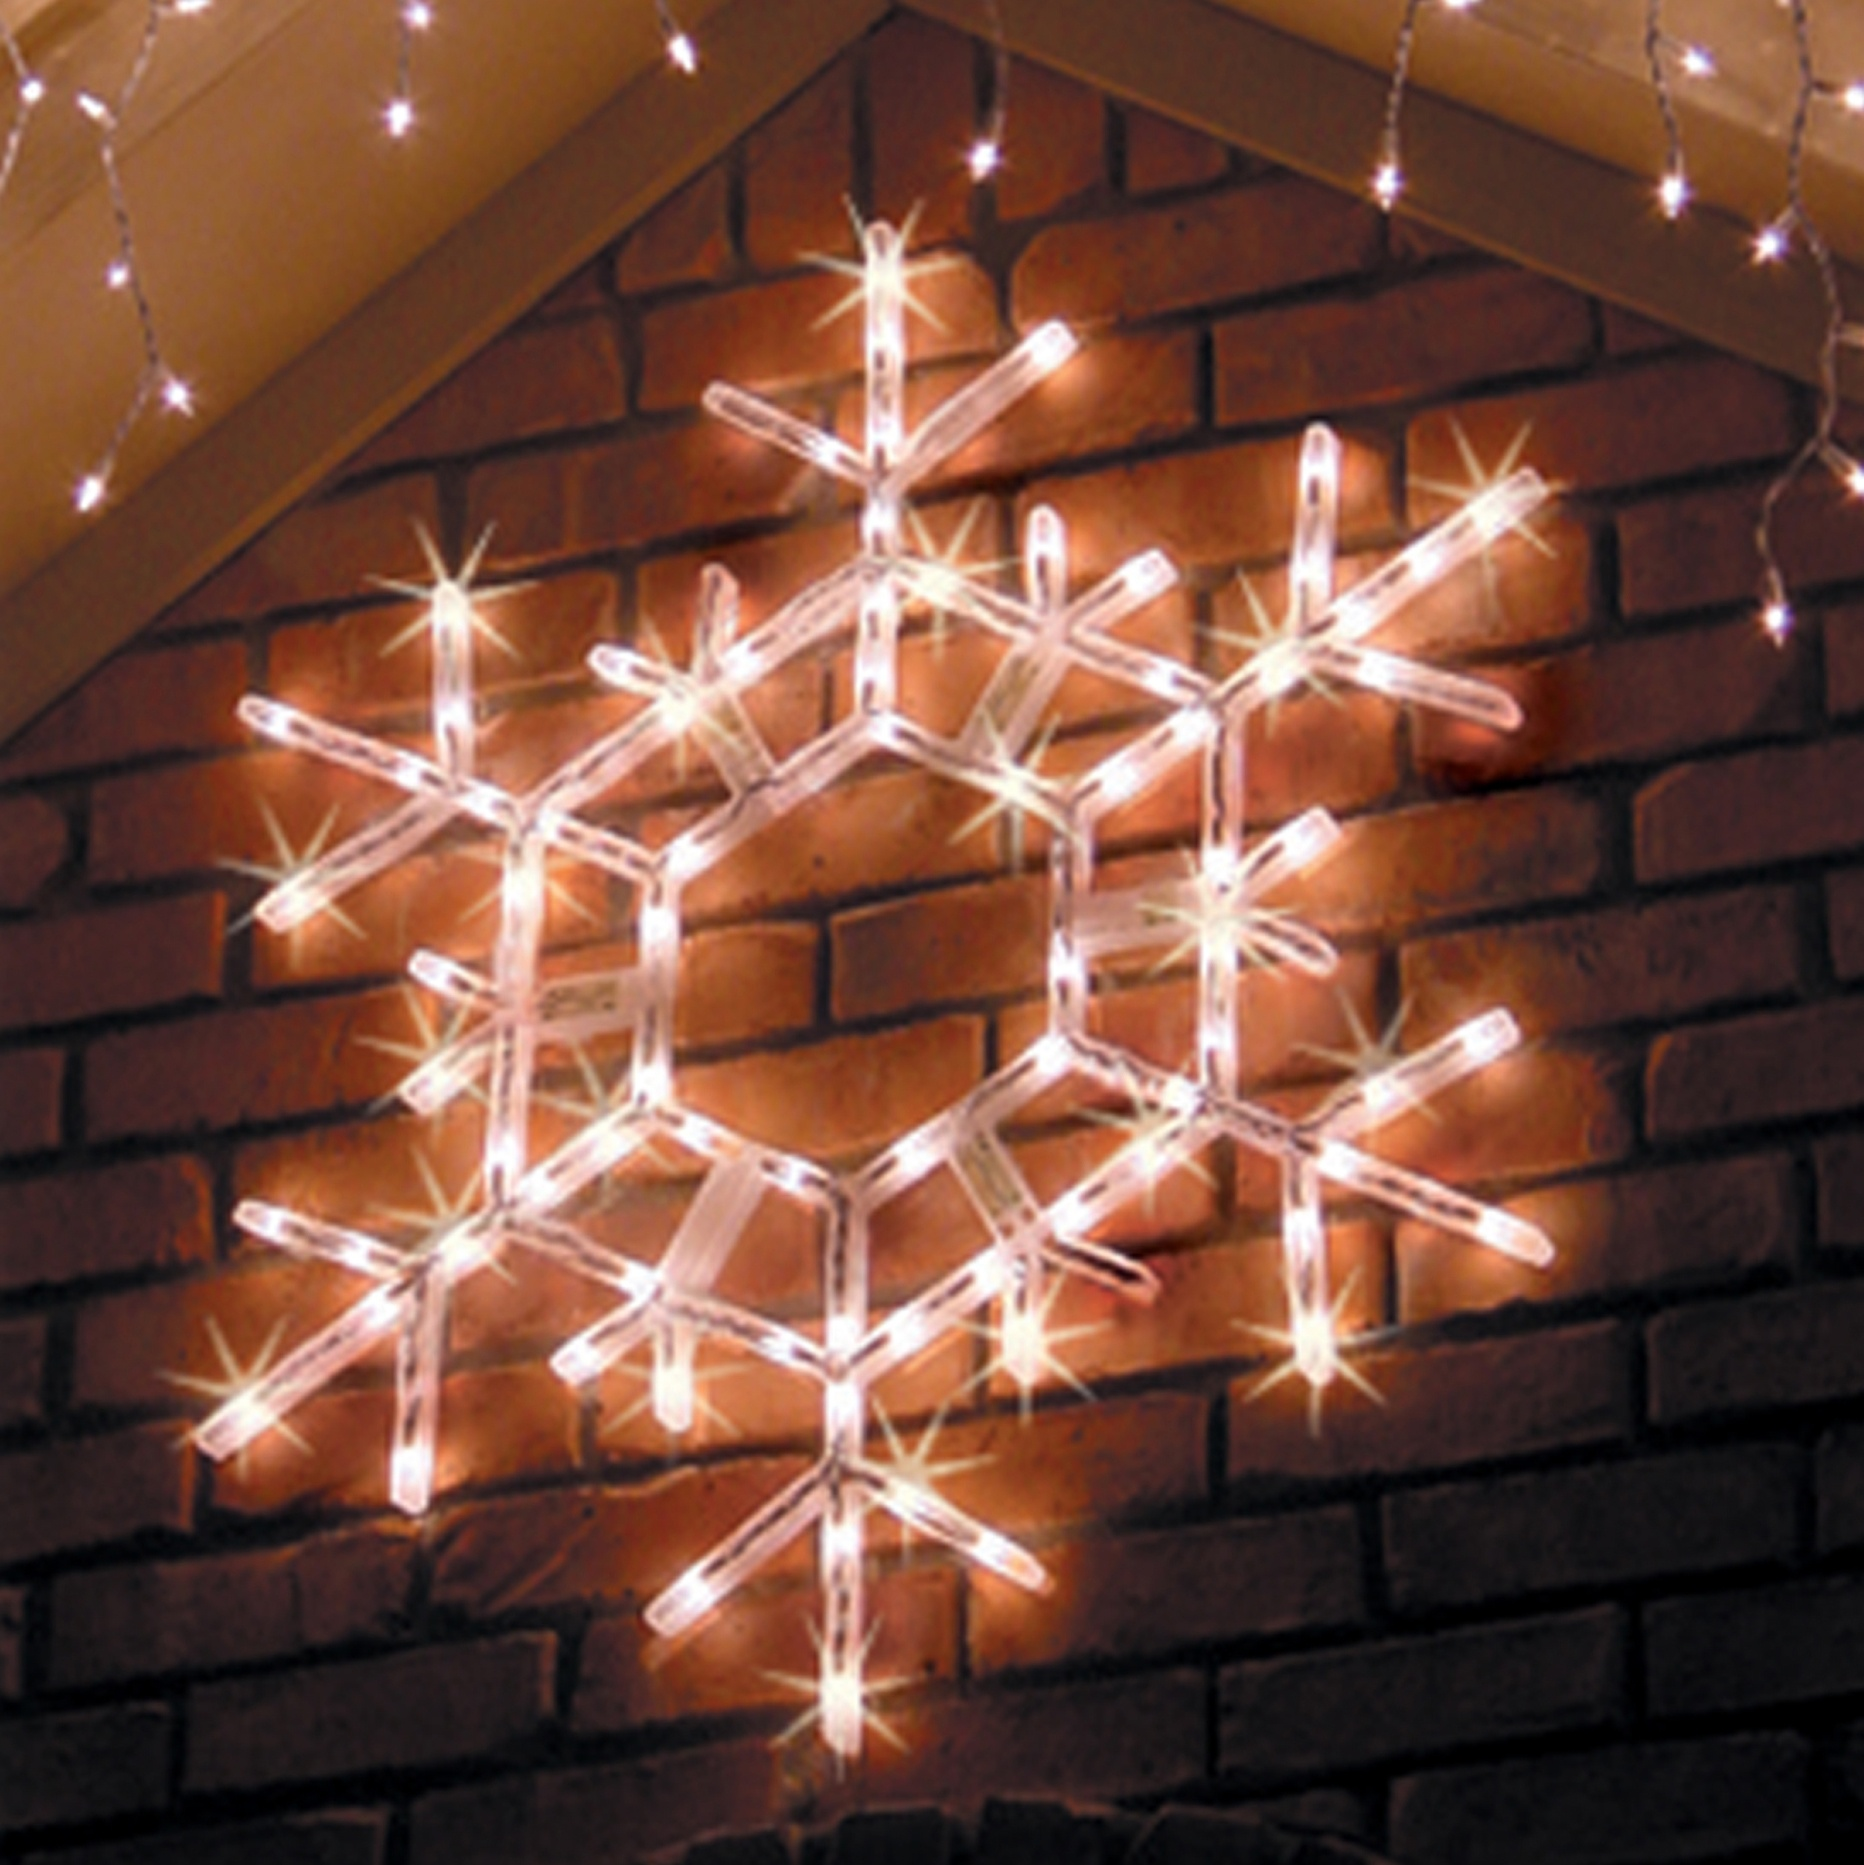 Christmas Decorations Outdoor Star : Lighted snowflakes stars yard envy